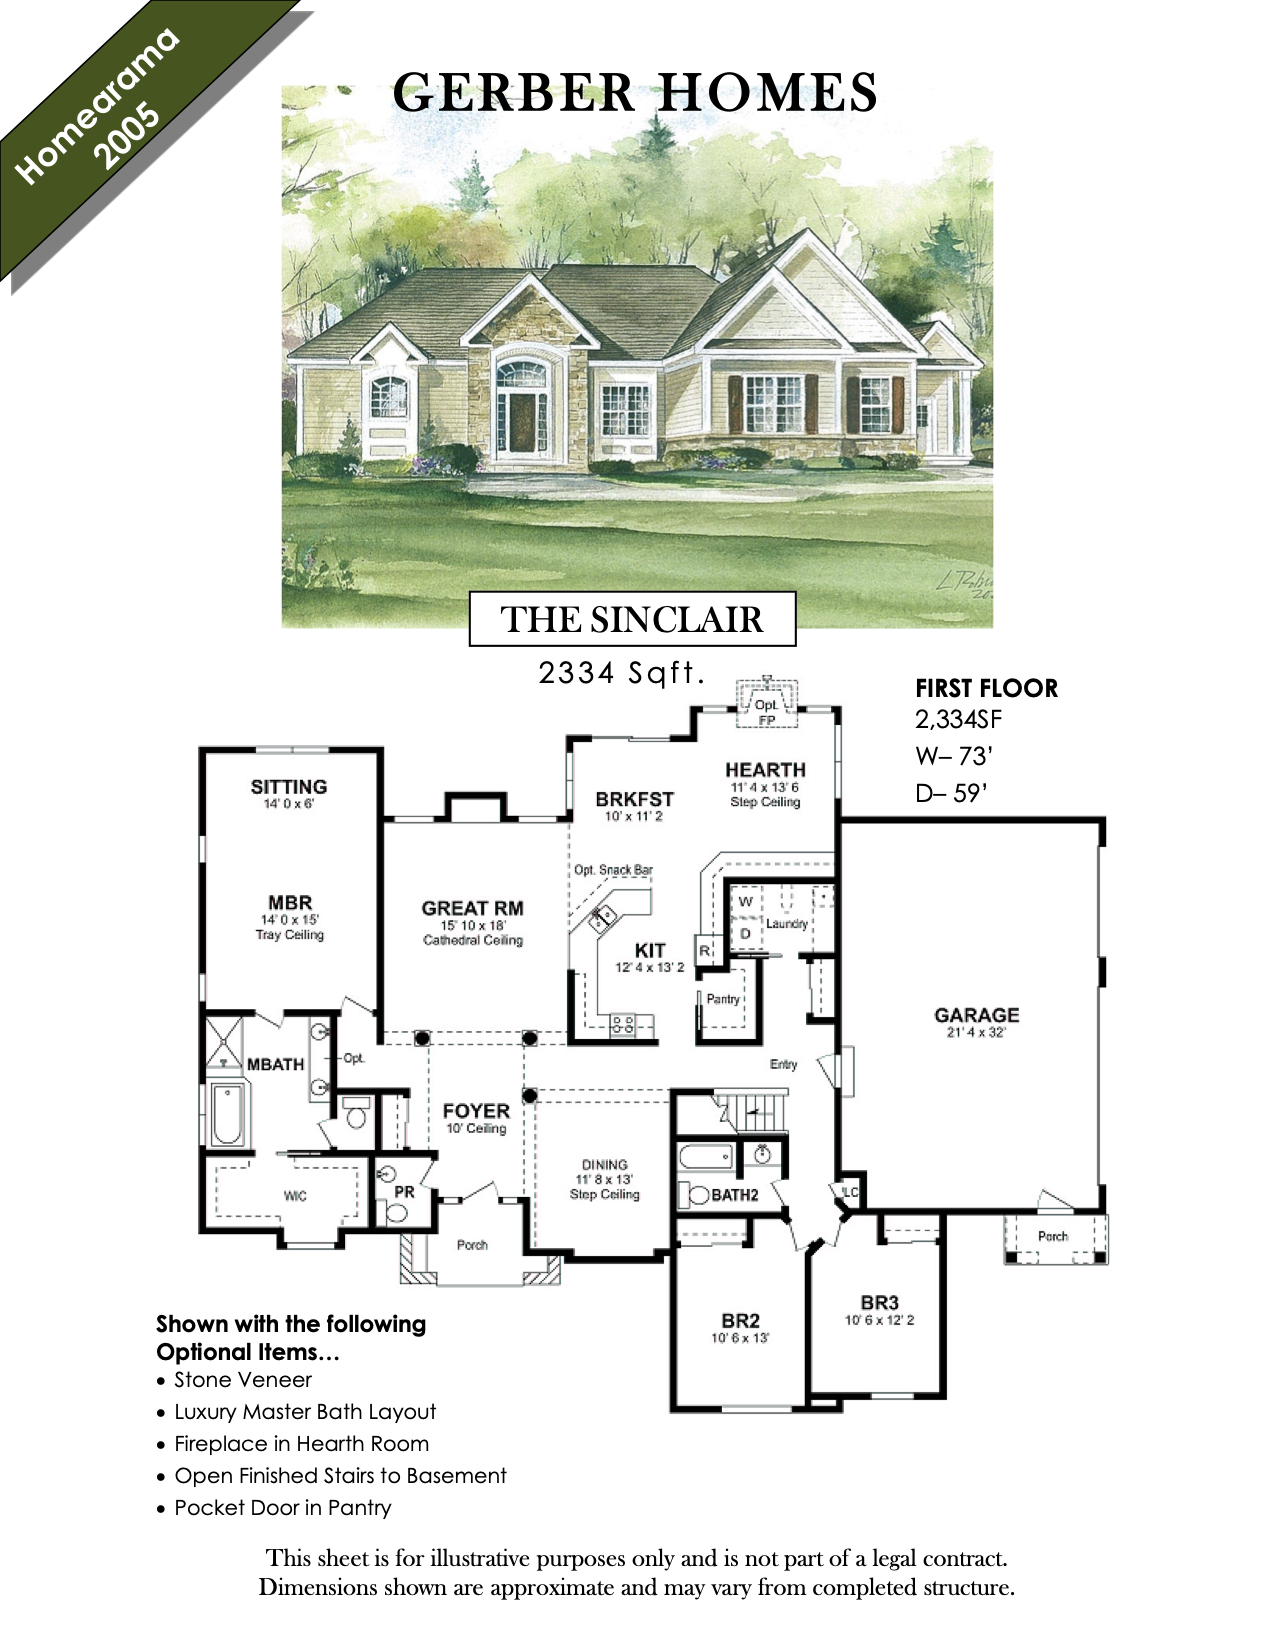 sinclair floor plan